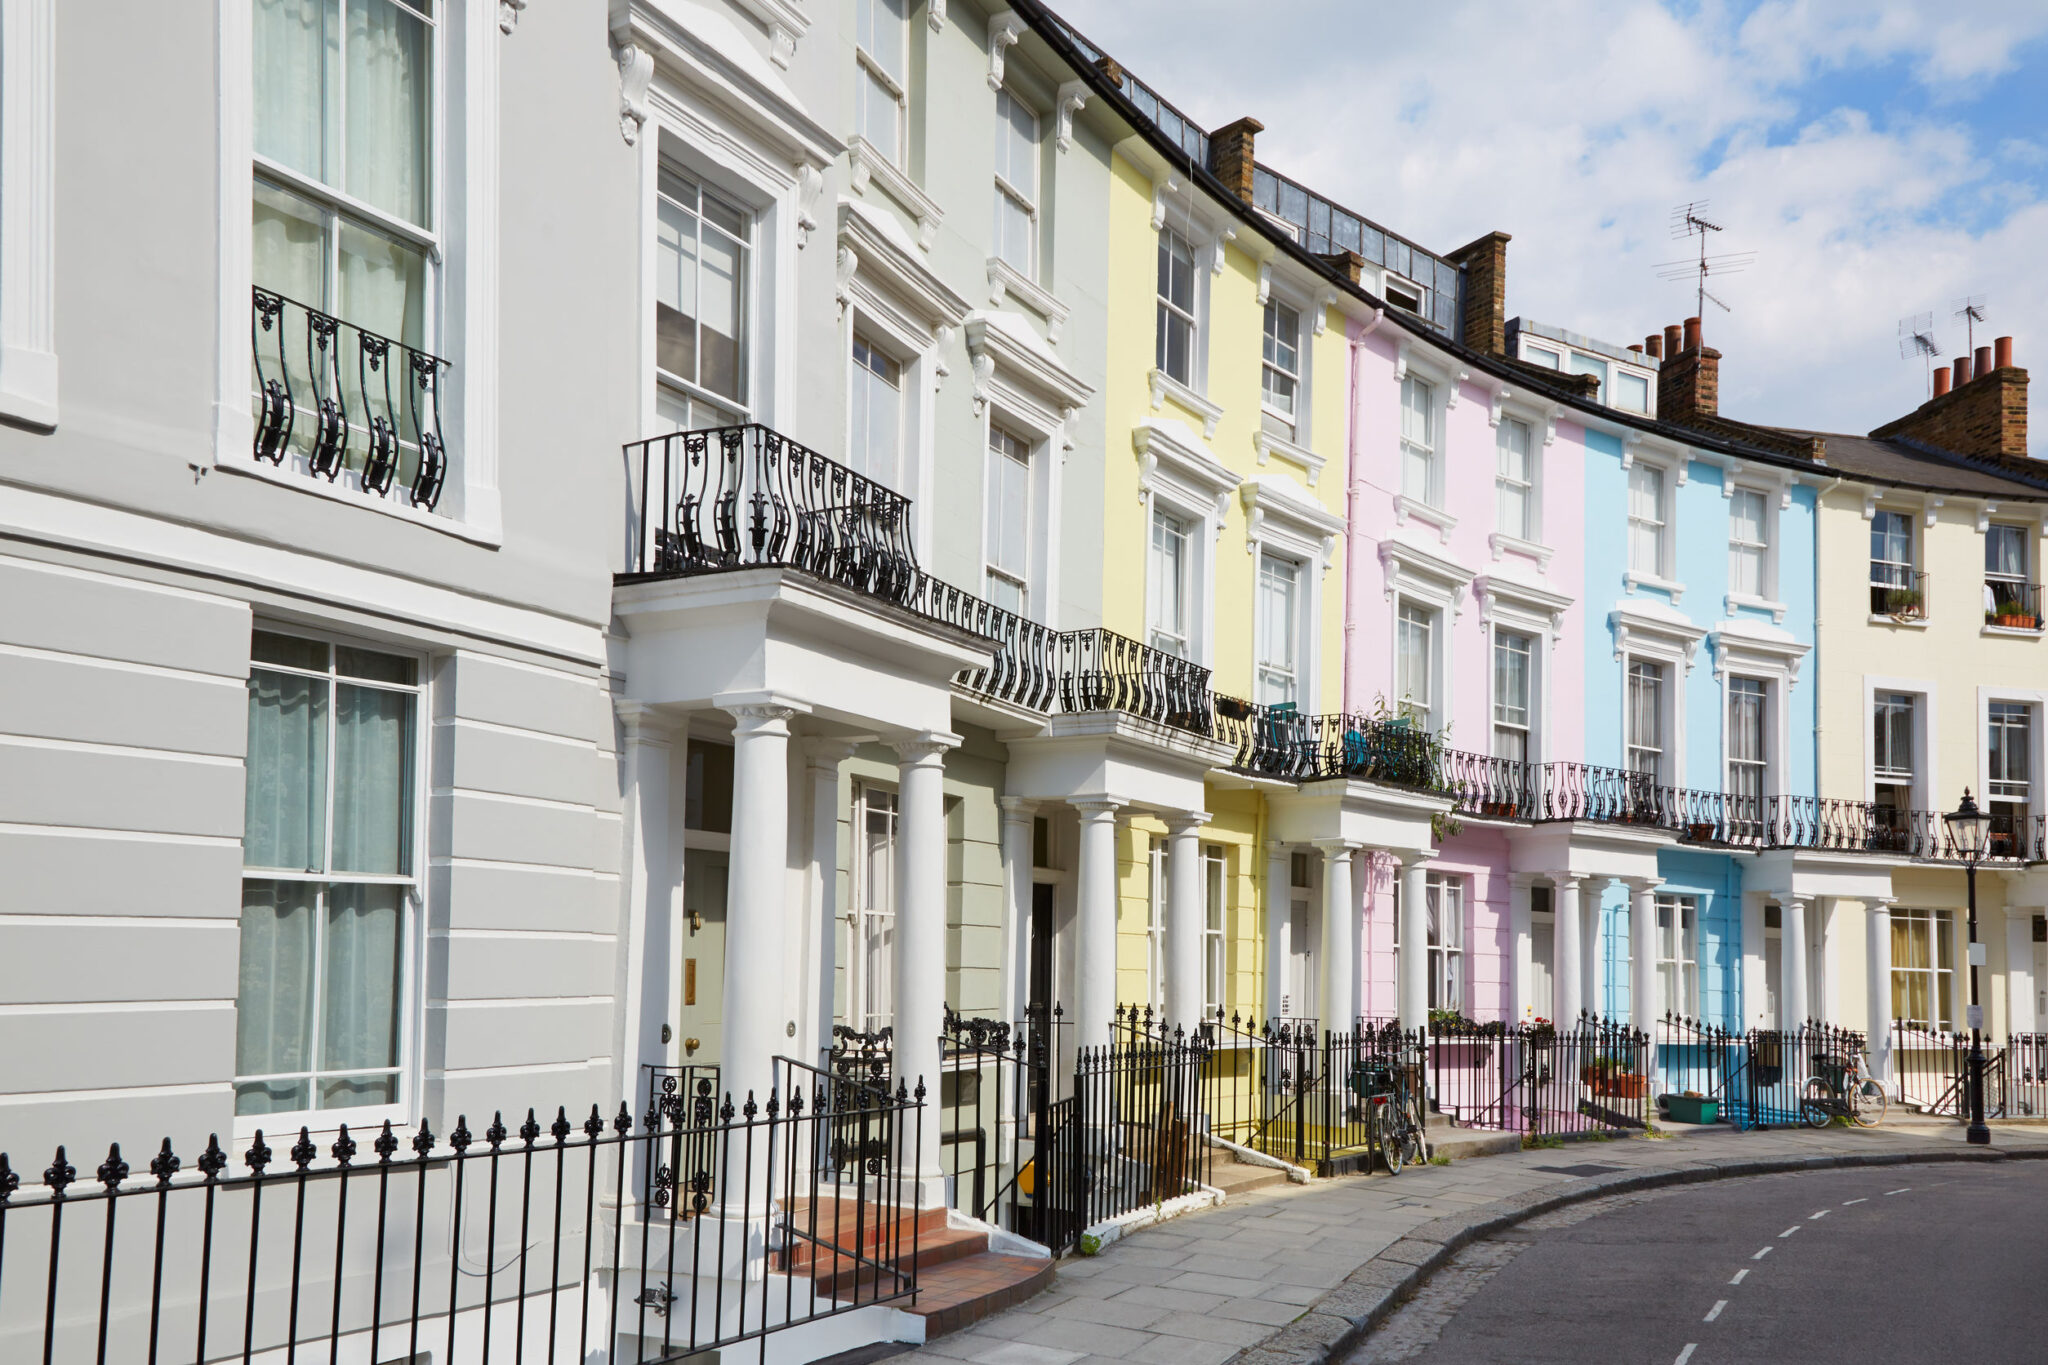 Colorful London houses in Primrose hill